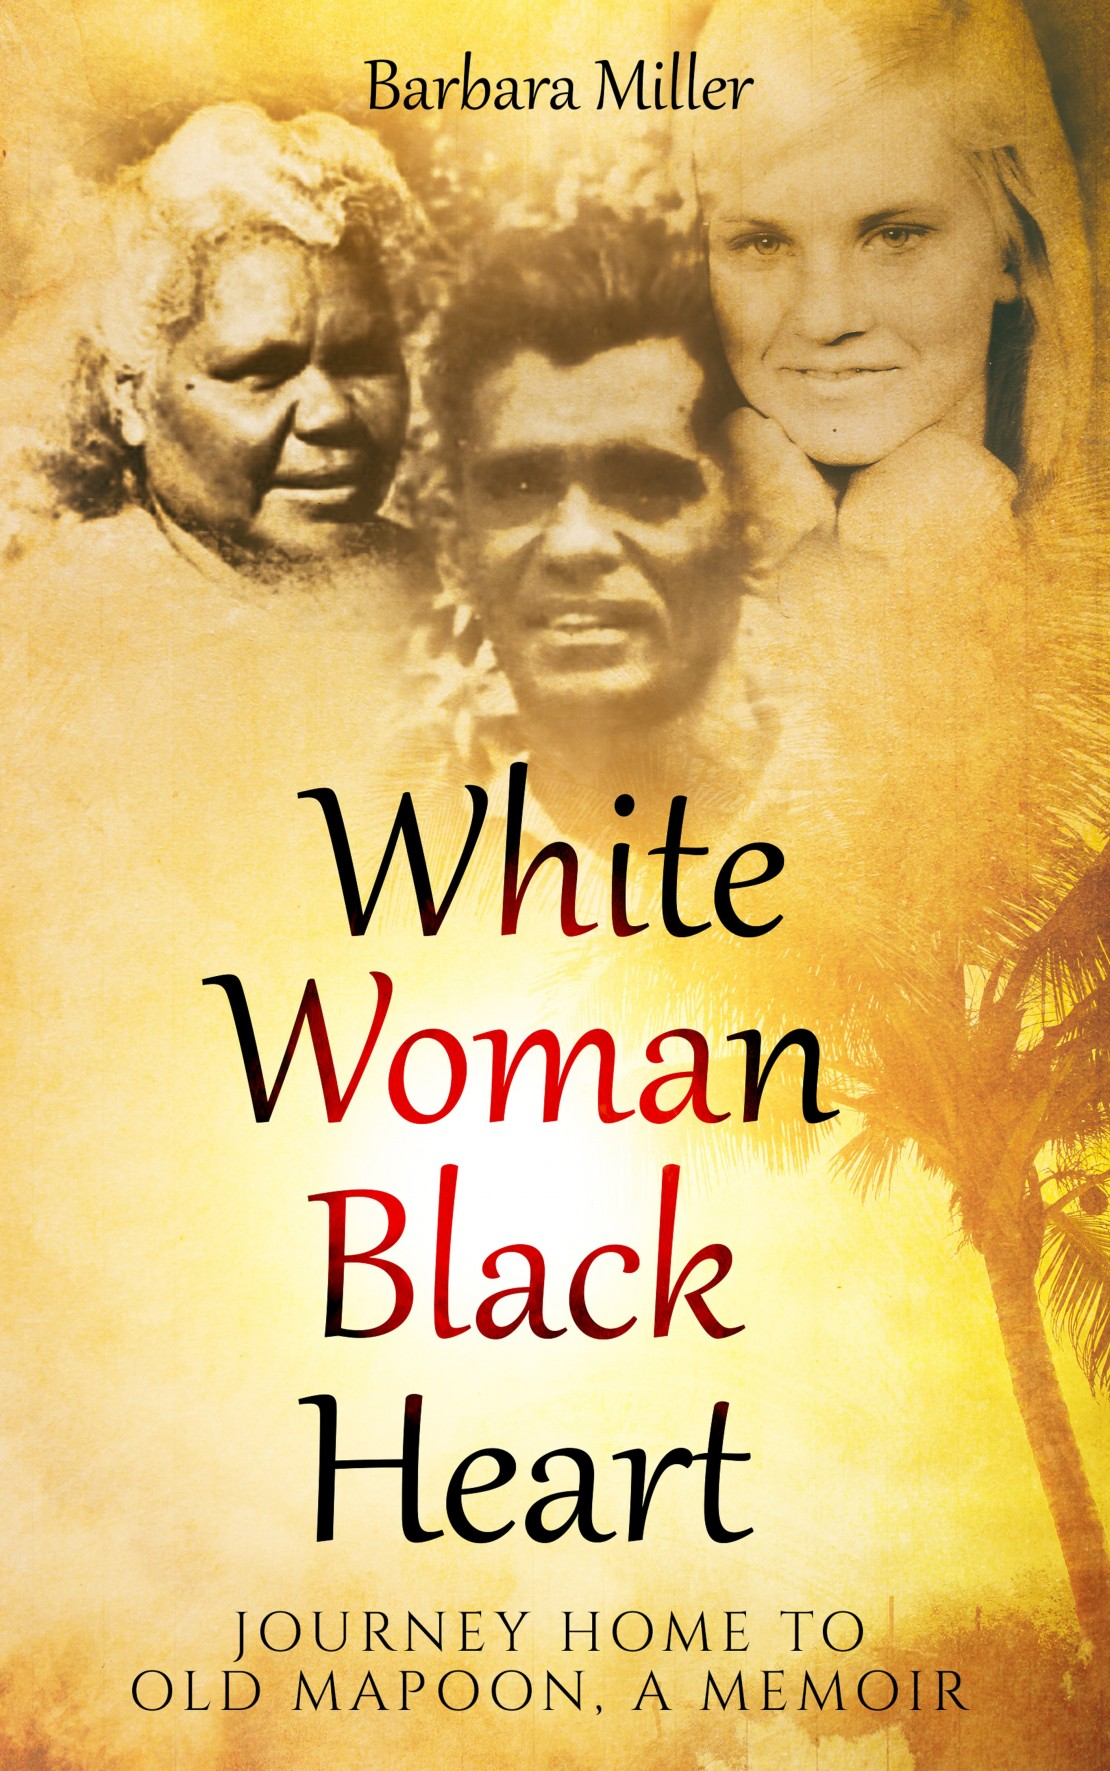 White Woman Black Heart by Barbara Miller